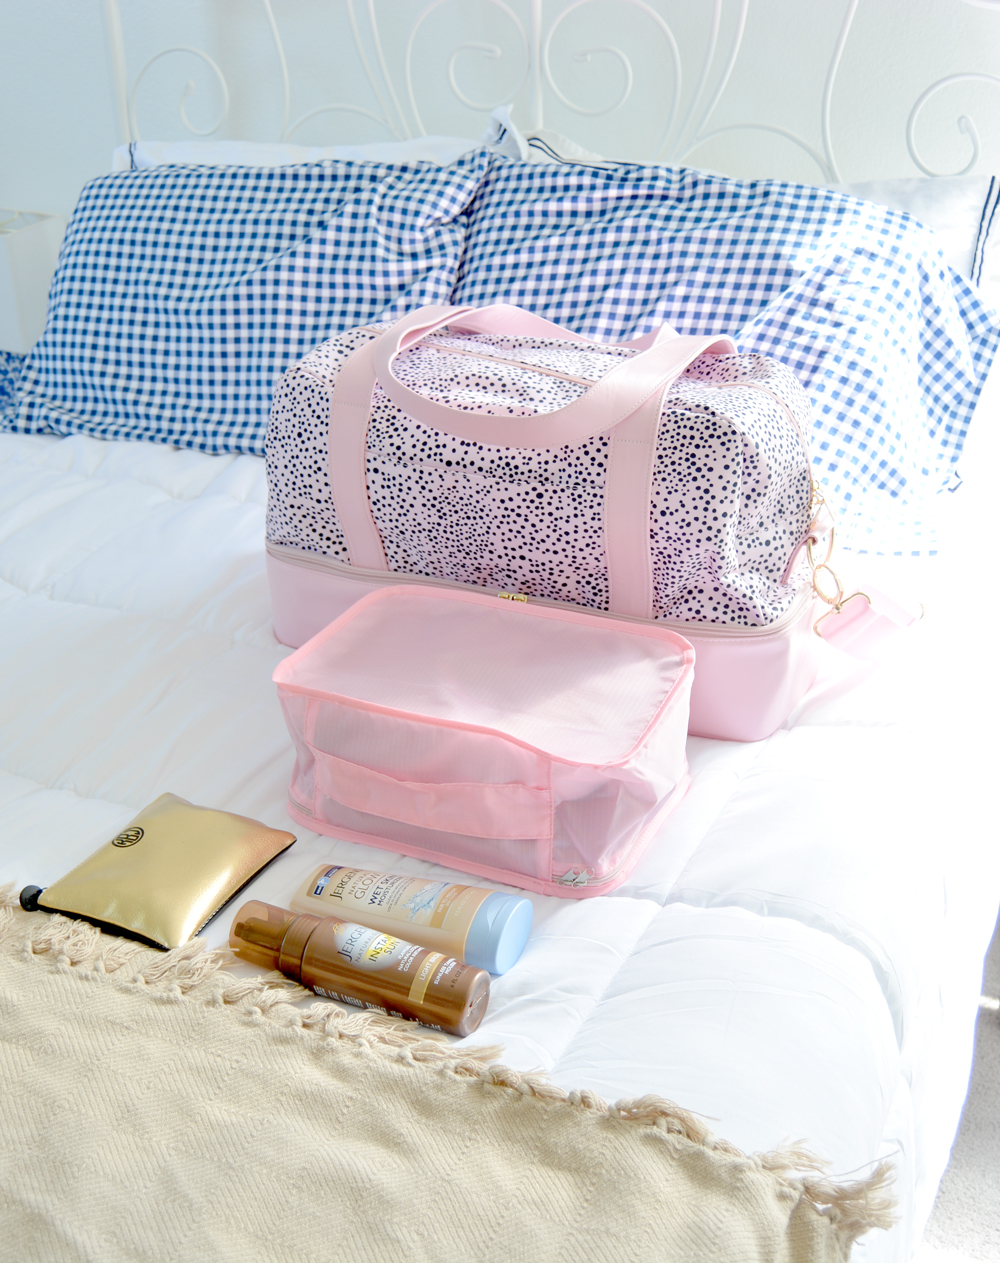 Five Time-Saving Hacks to Prepare for Vacation